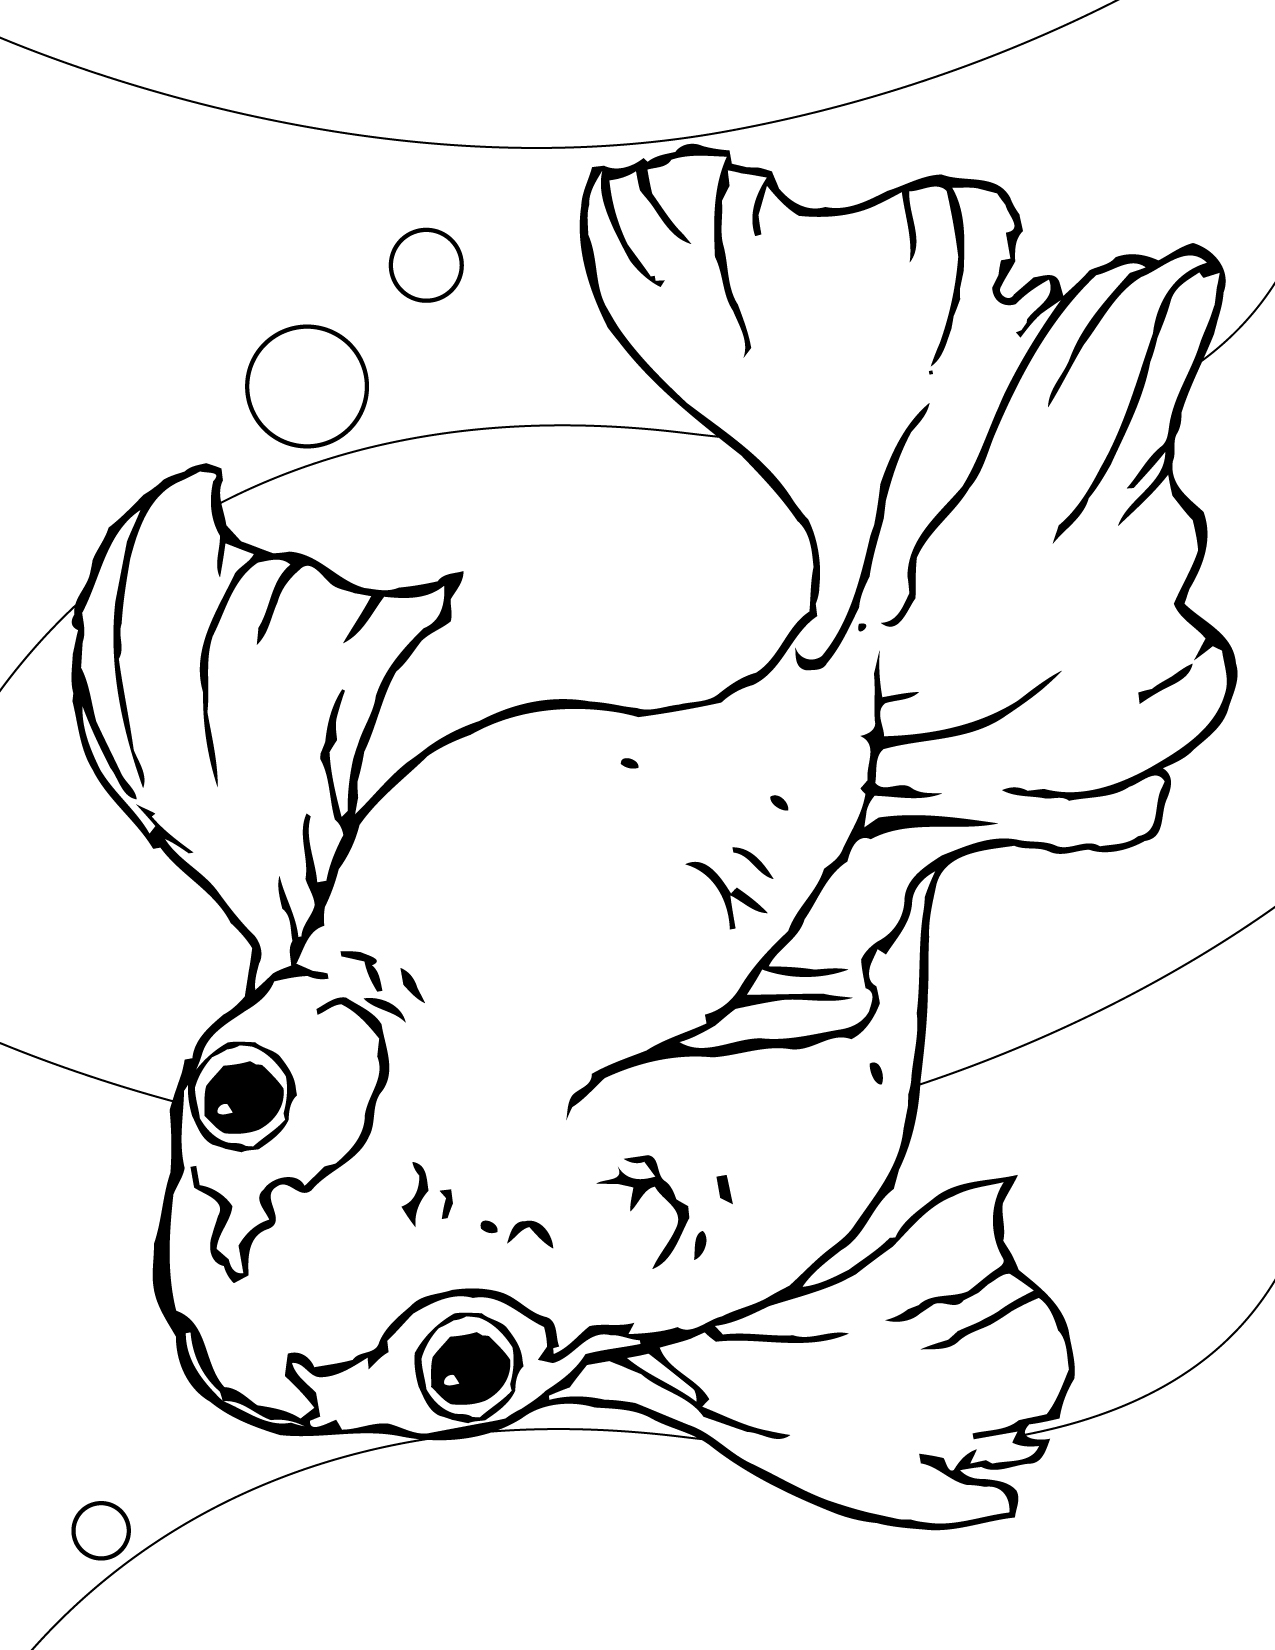 fish coloring pages for kids - photo#44